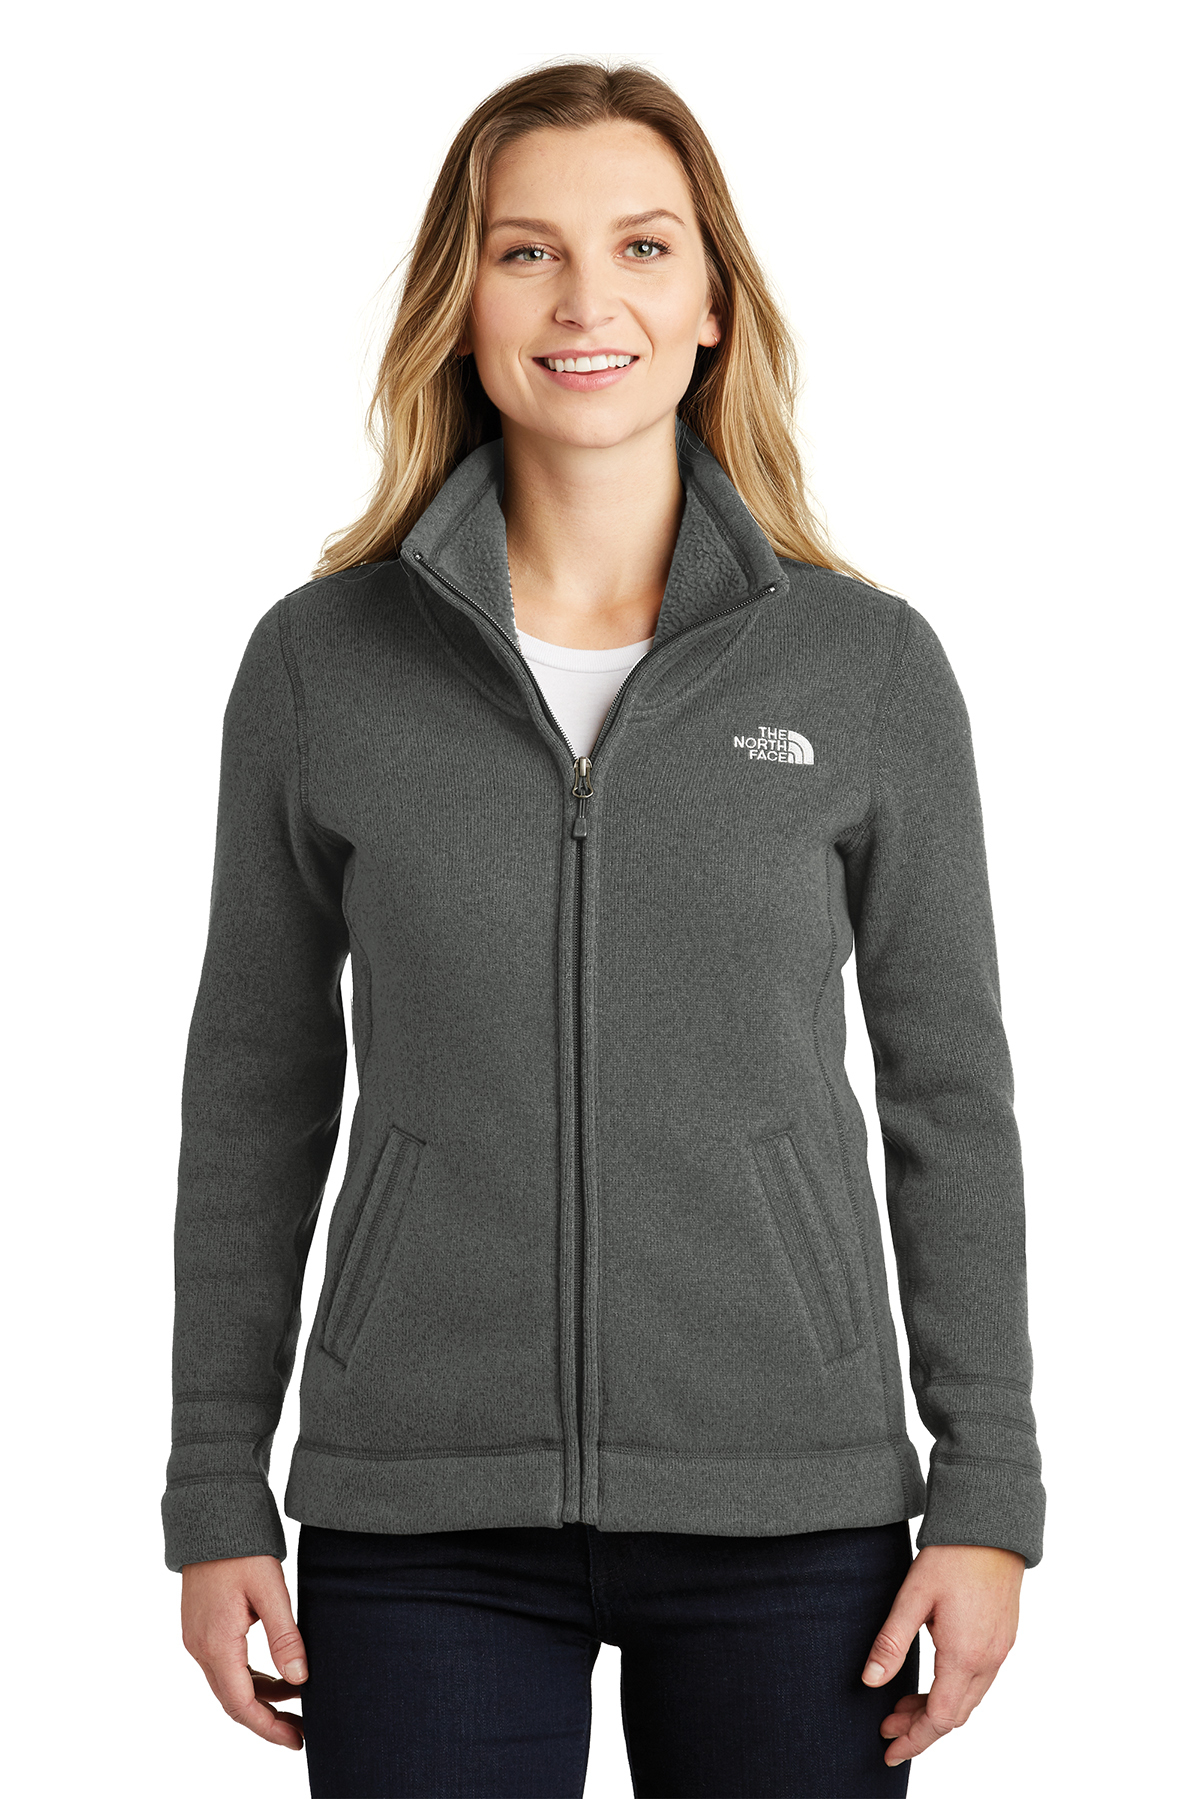 The North Face® NF0A3LH8 - Ladies Sweater Fleece Jacket $71.25 ...